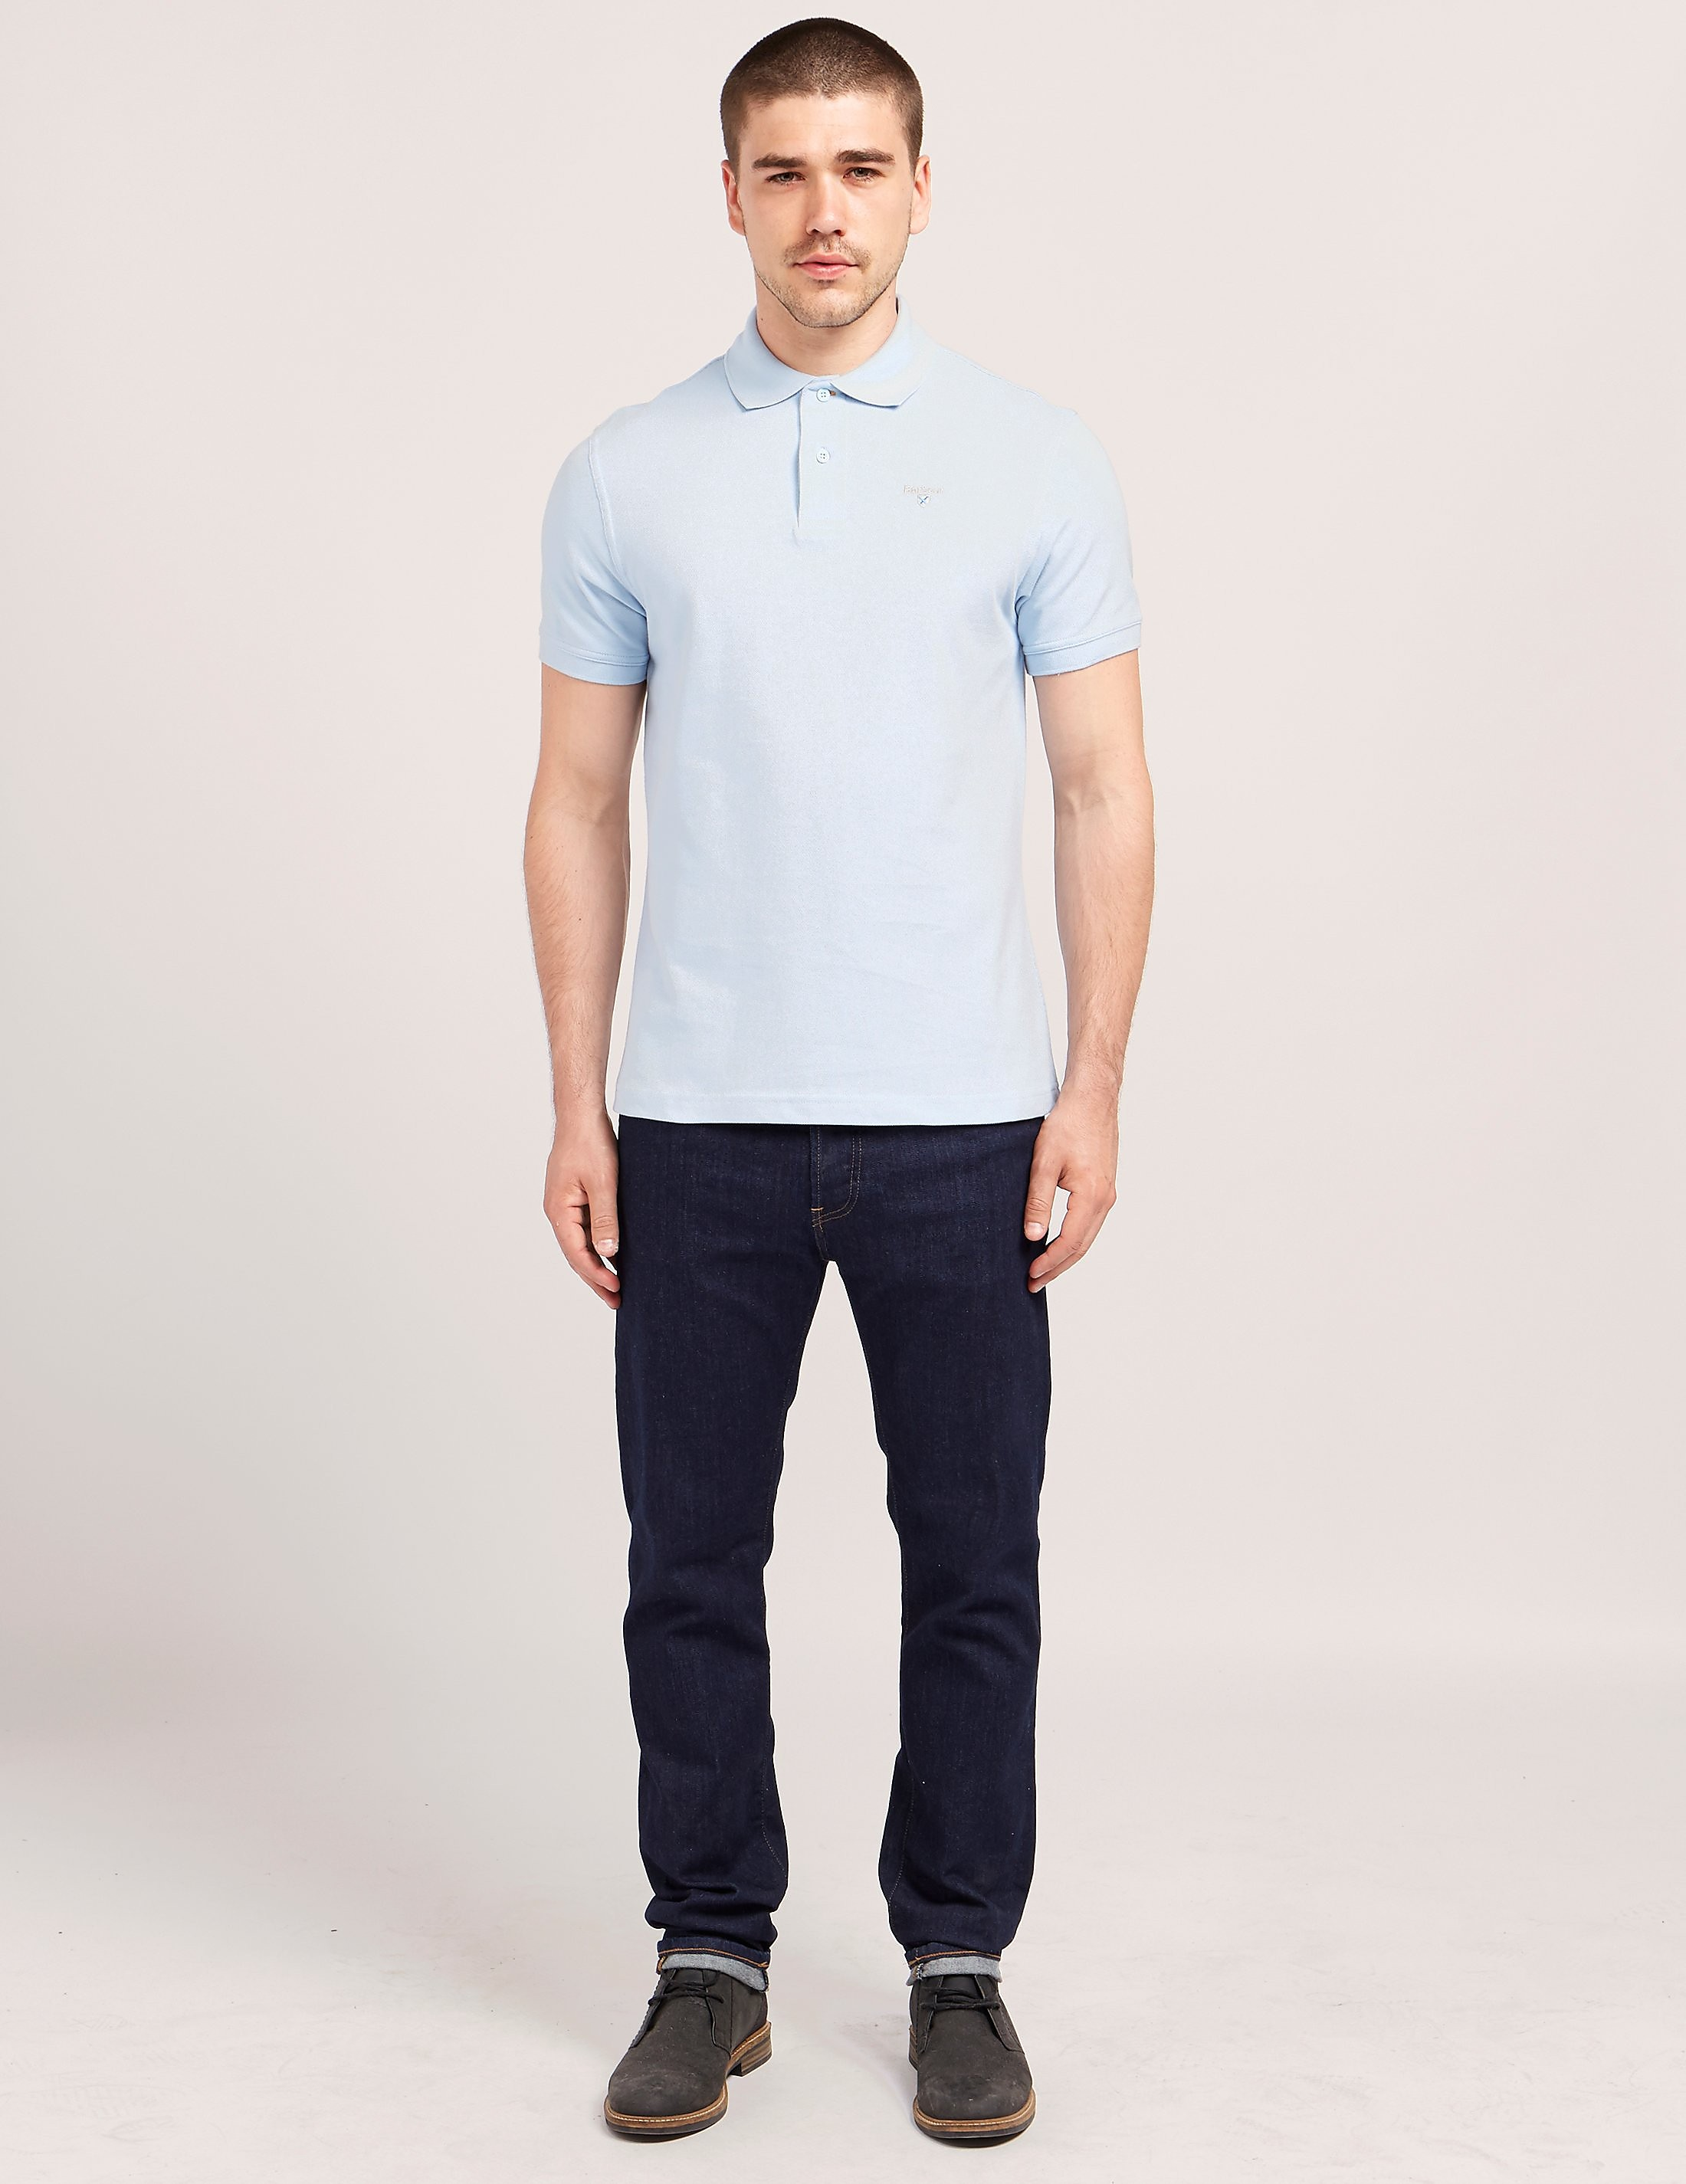 Barbour Sports Short Sleeve Polo Shirt